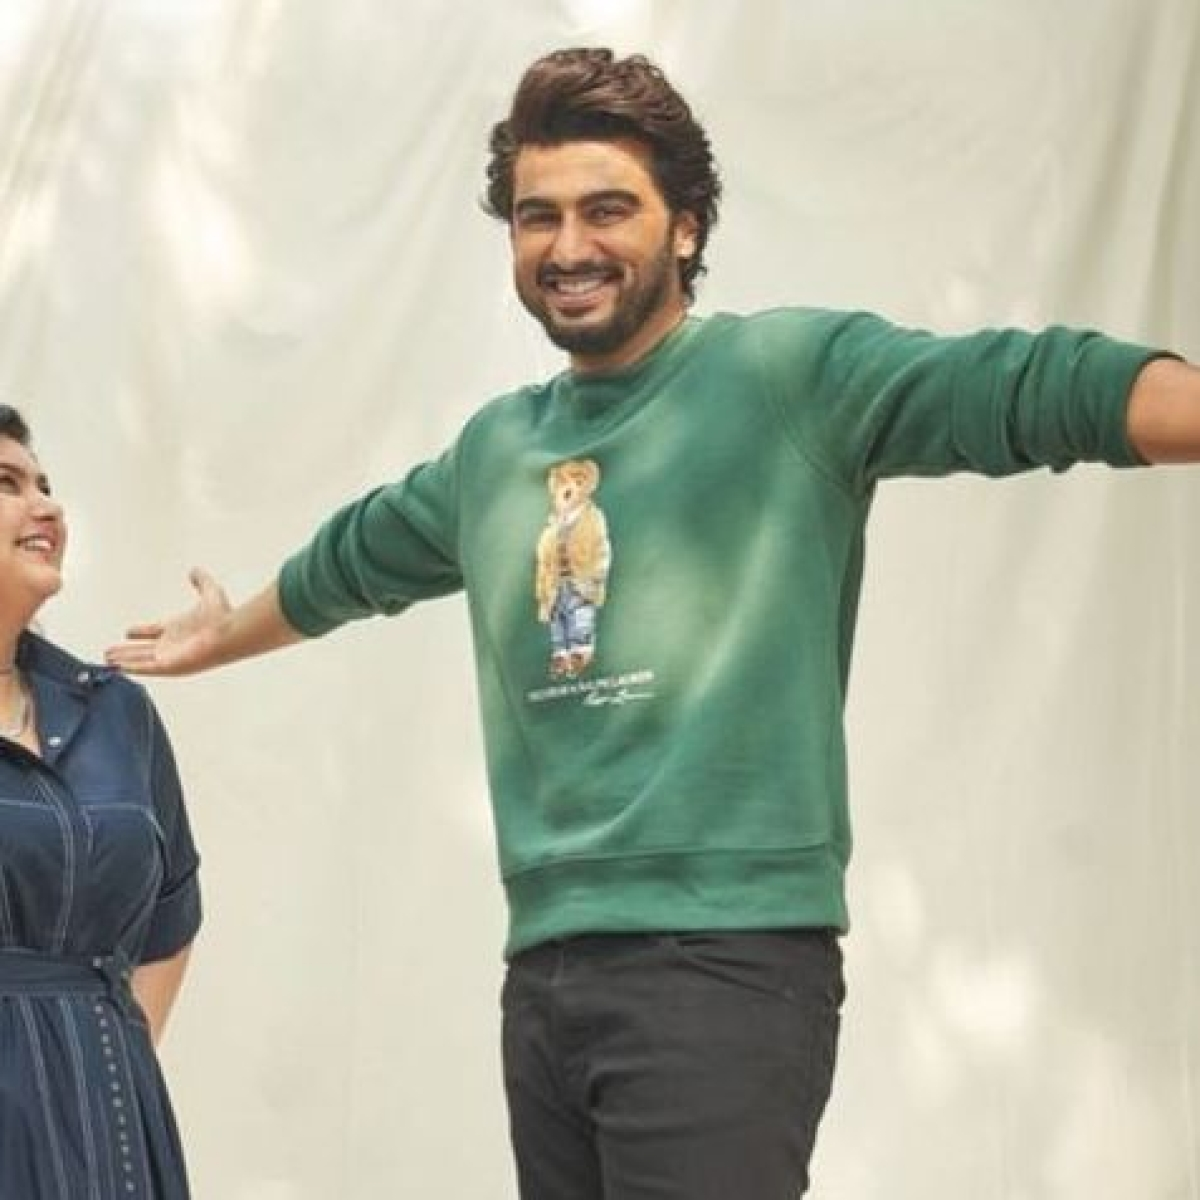 Arjun Kapoor and his sister Anshula raise Rs 1 crore to provide relief amid COVID-19 crisis